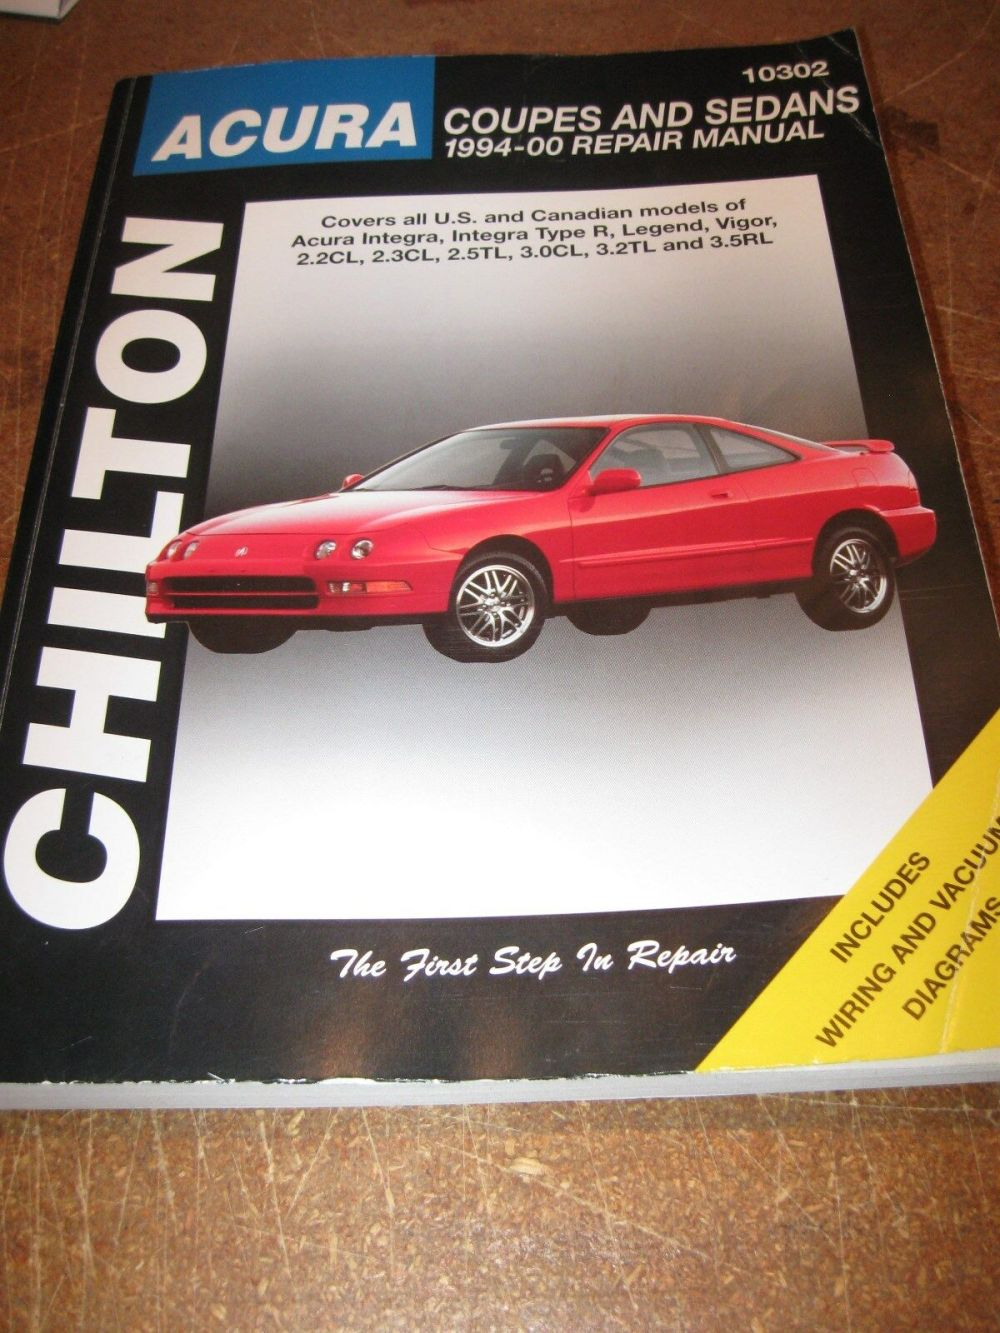 medium resolution of chilton acura coupes sedans 1994 2000 repair manual 10302 integra legend vigor for sale online ebay